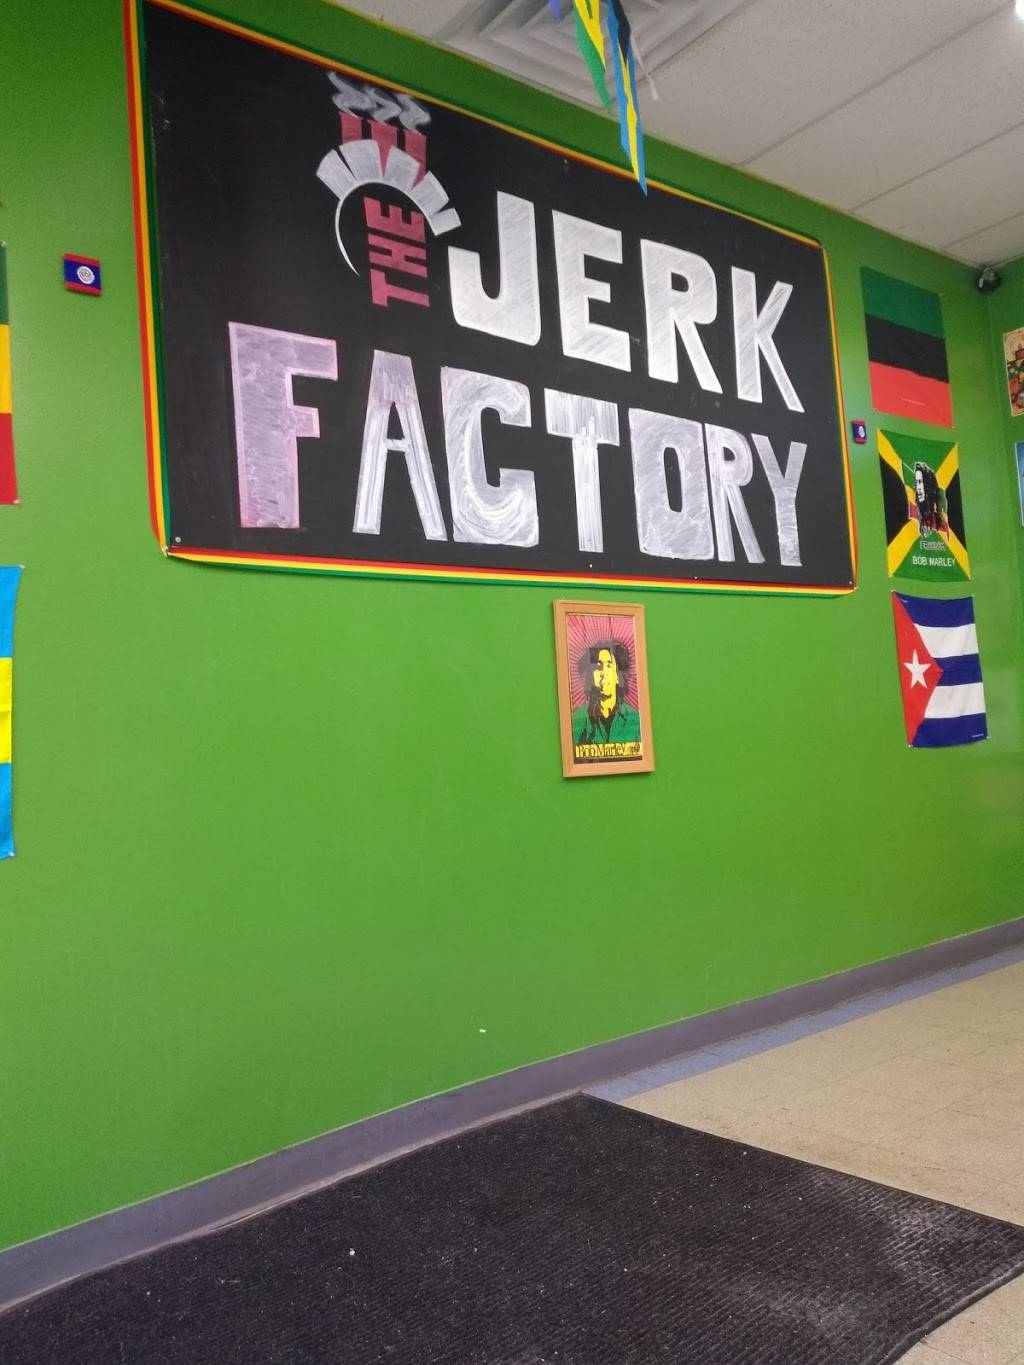 Jerk Factory | restaurant | 225 E 47th St, Chicago, IL 60653, USA | 7738559528 OR +1 773-855-9528